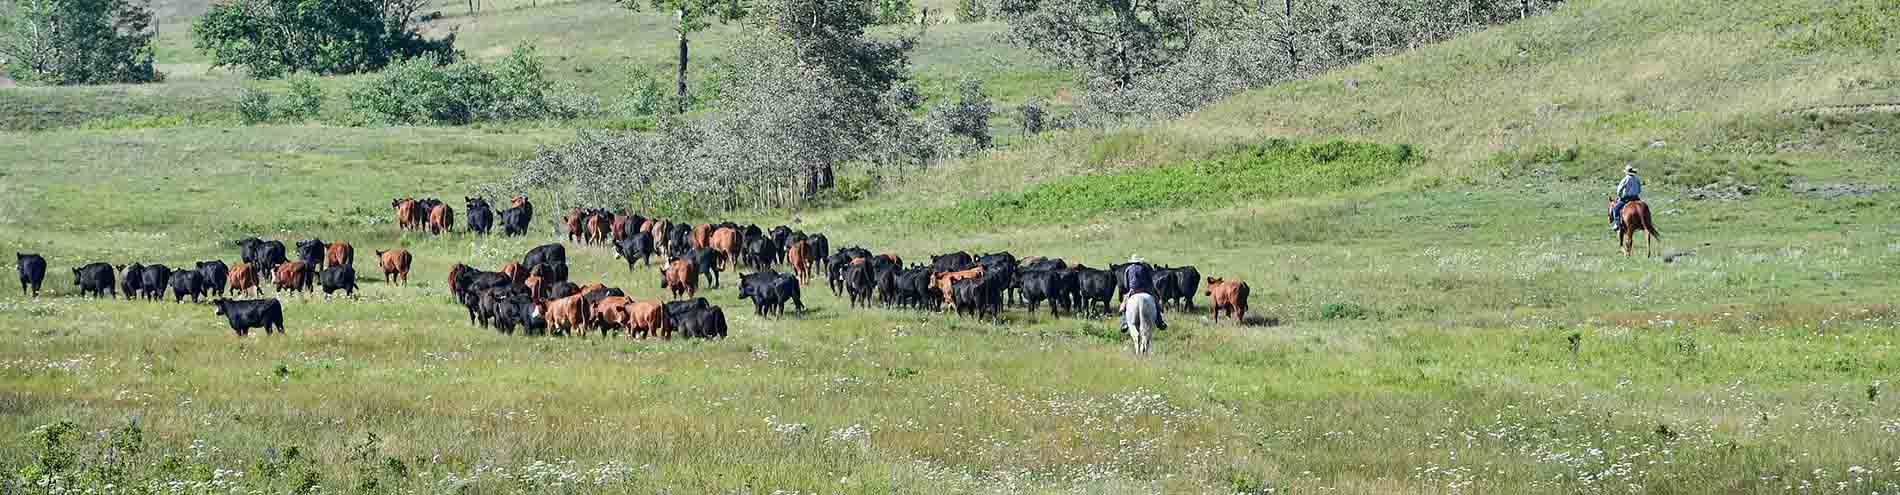 rancher-rider-cattle